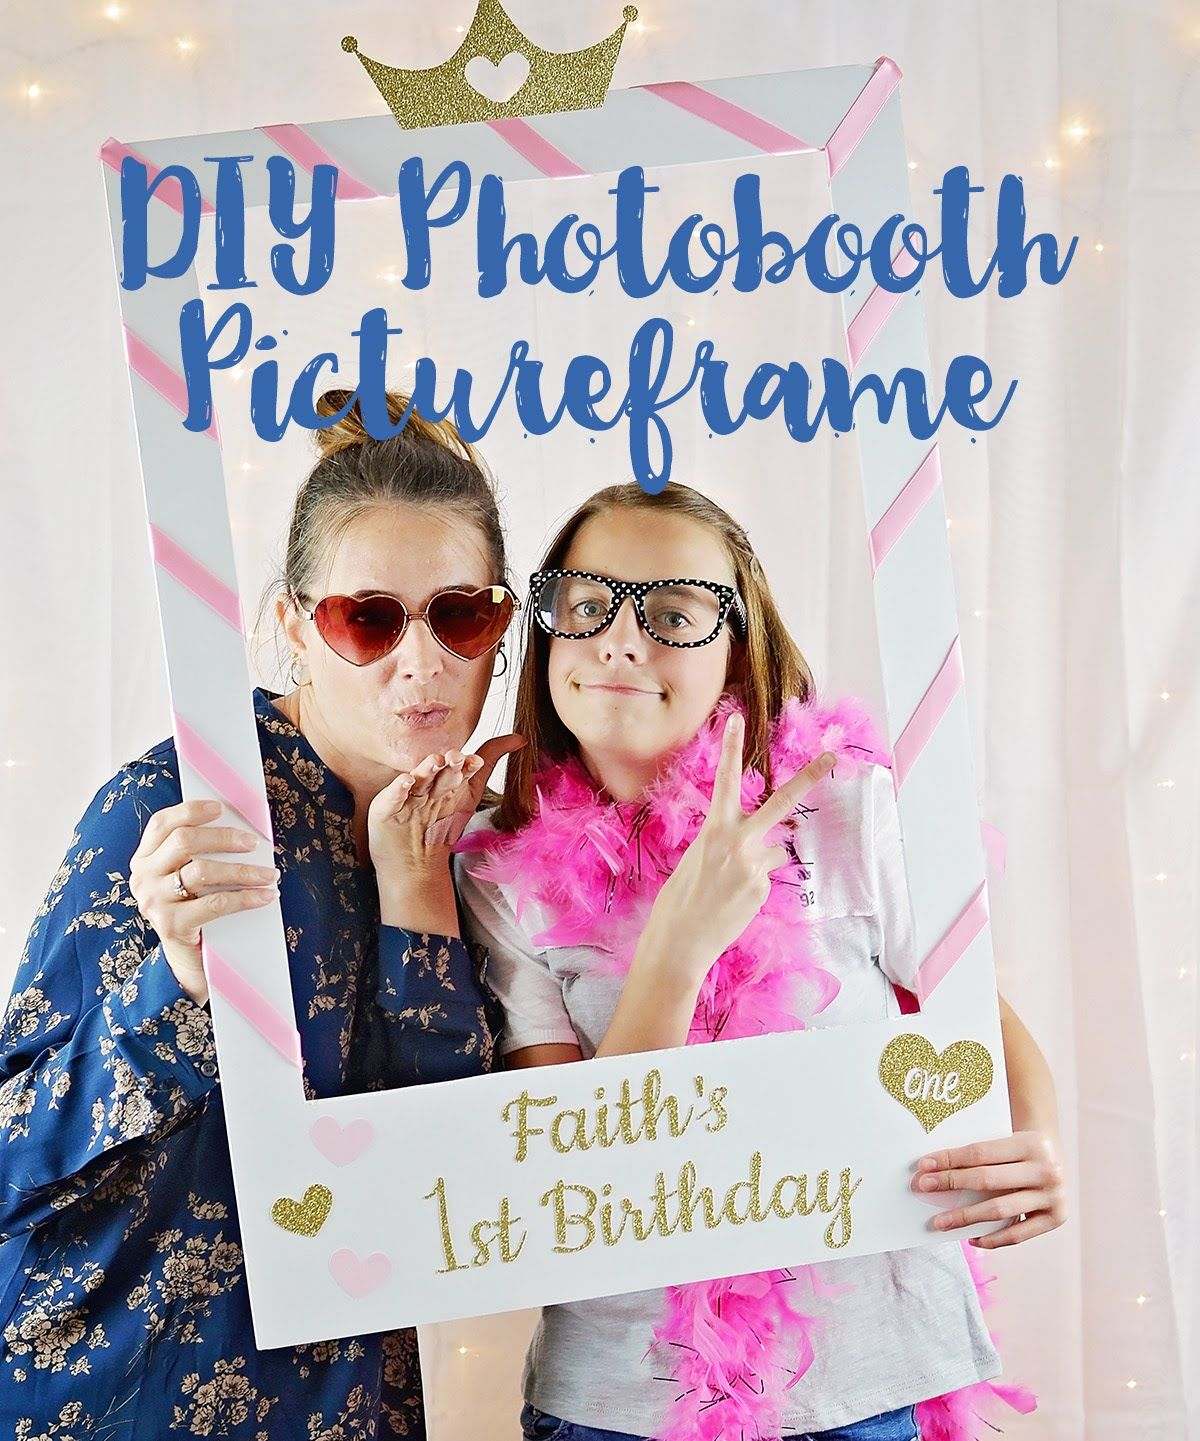 How To Make A Photo Booth Picture Frame Diy Photo Booth Photo